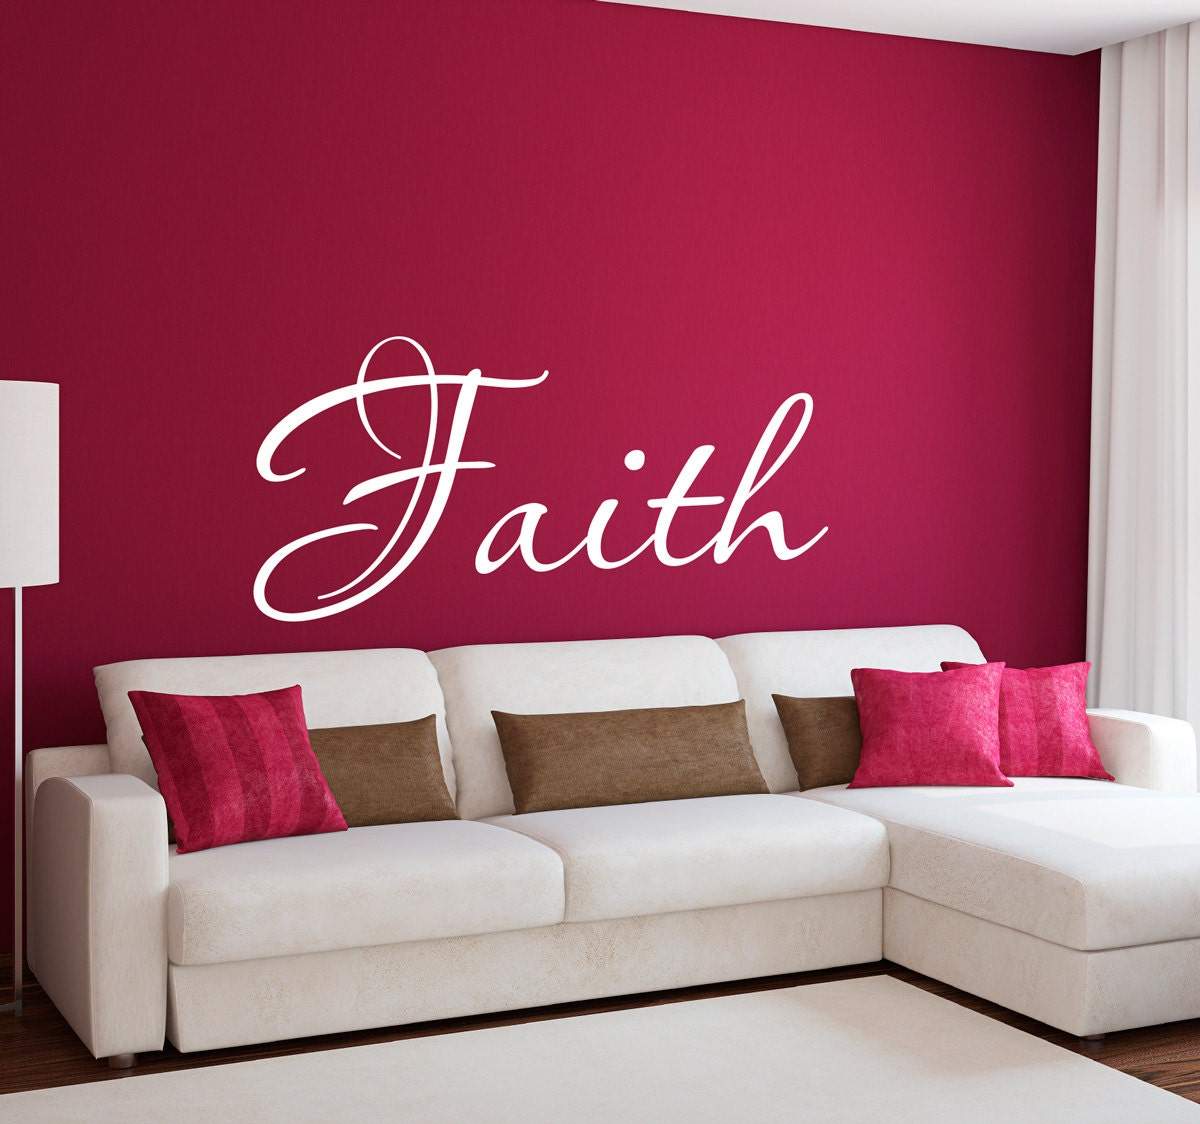 Wall decals religious high def photographs